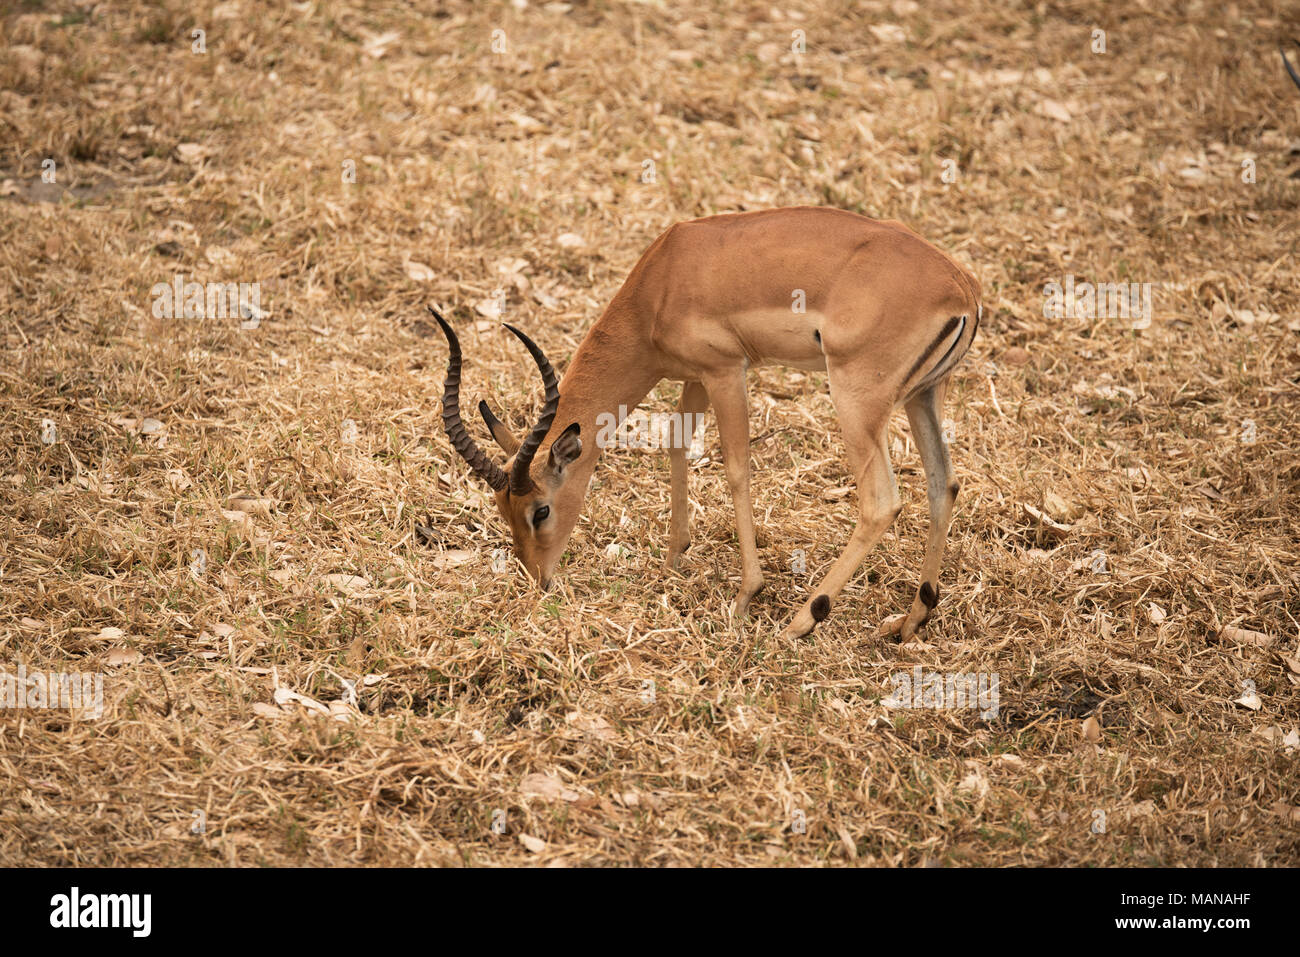 Game Feeder Stock Photos Amp Game Feeder Stock Images Alamy